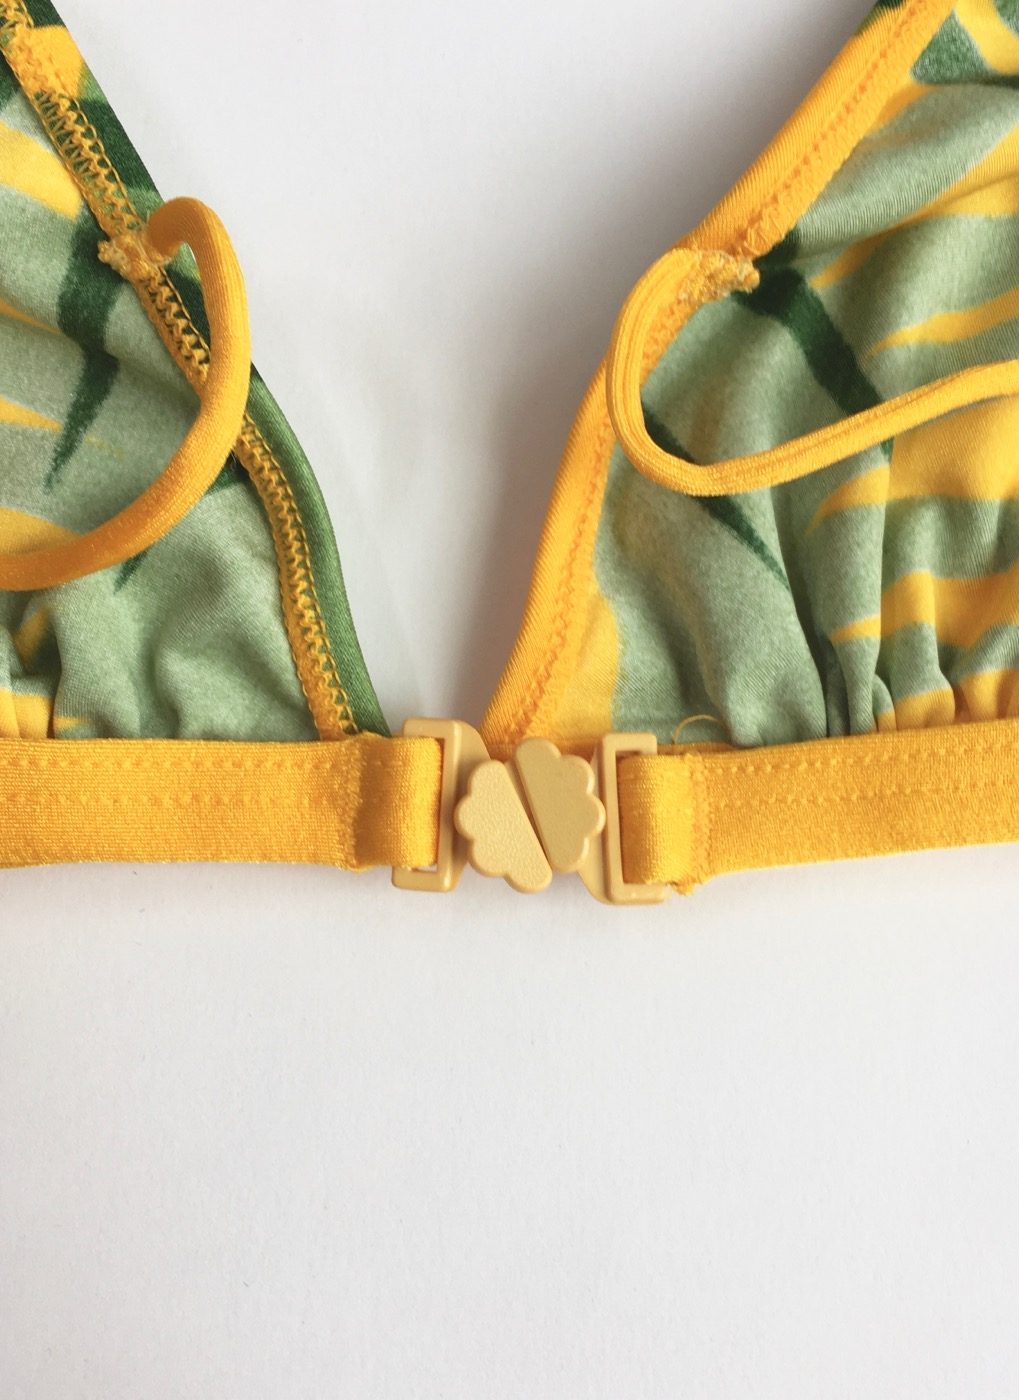 1970s-70s-yellow-tropical-gottex-bikini-bathing-suit-swimsuit